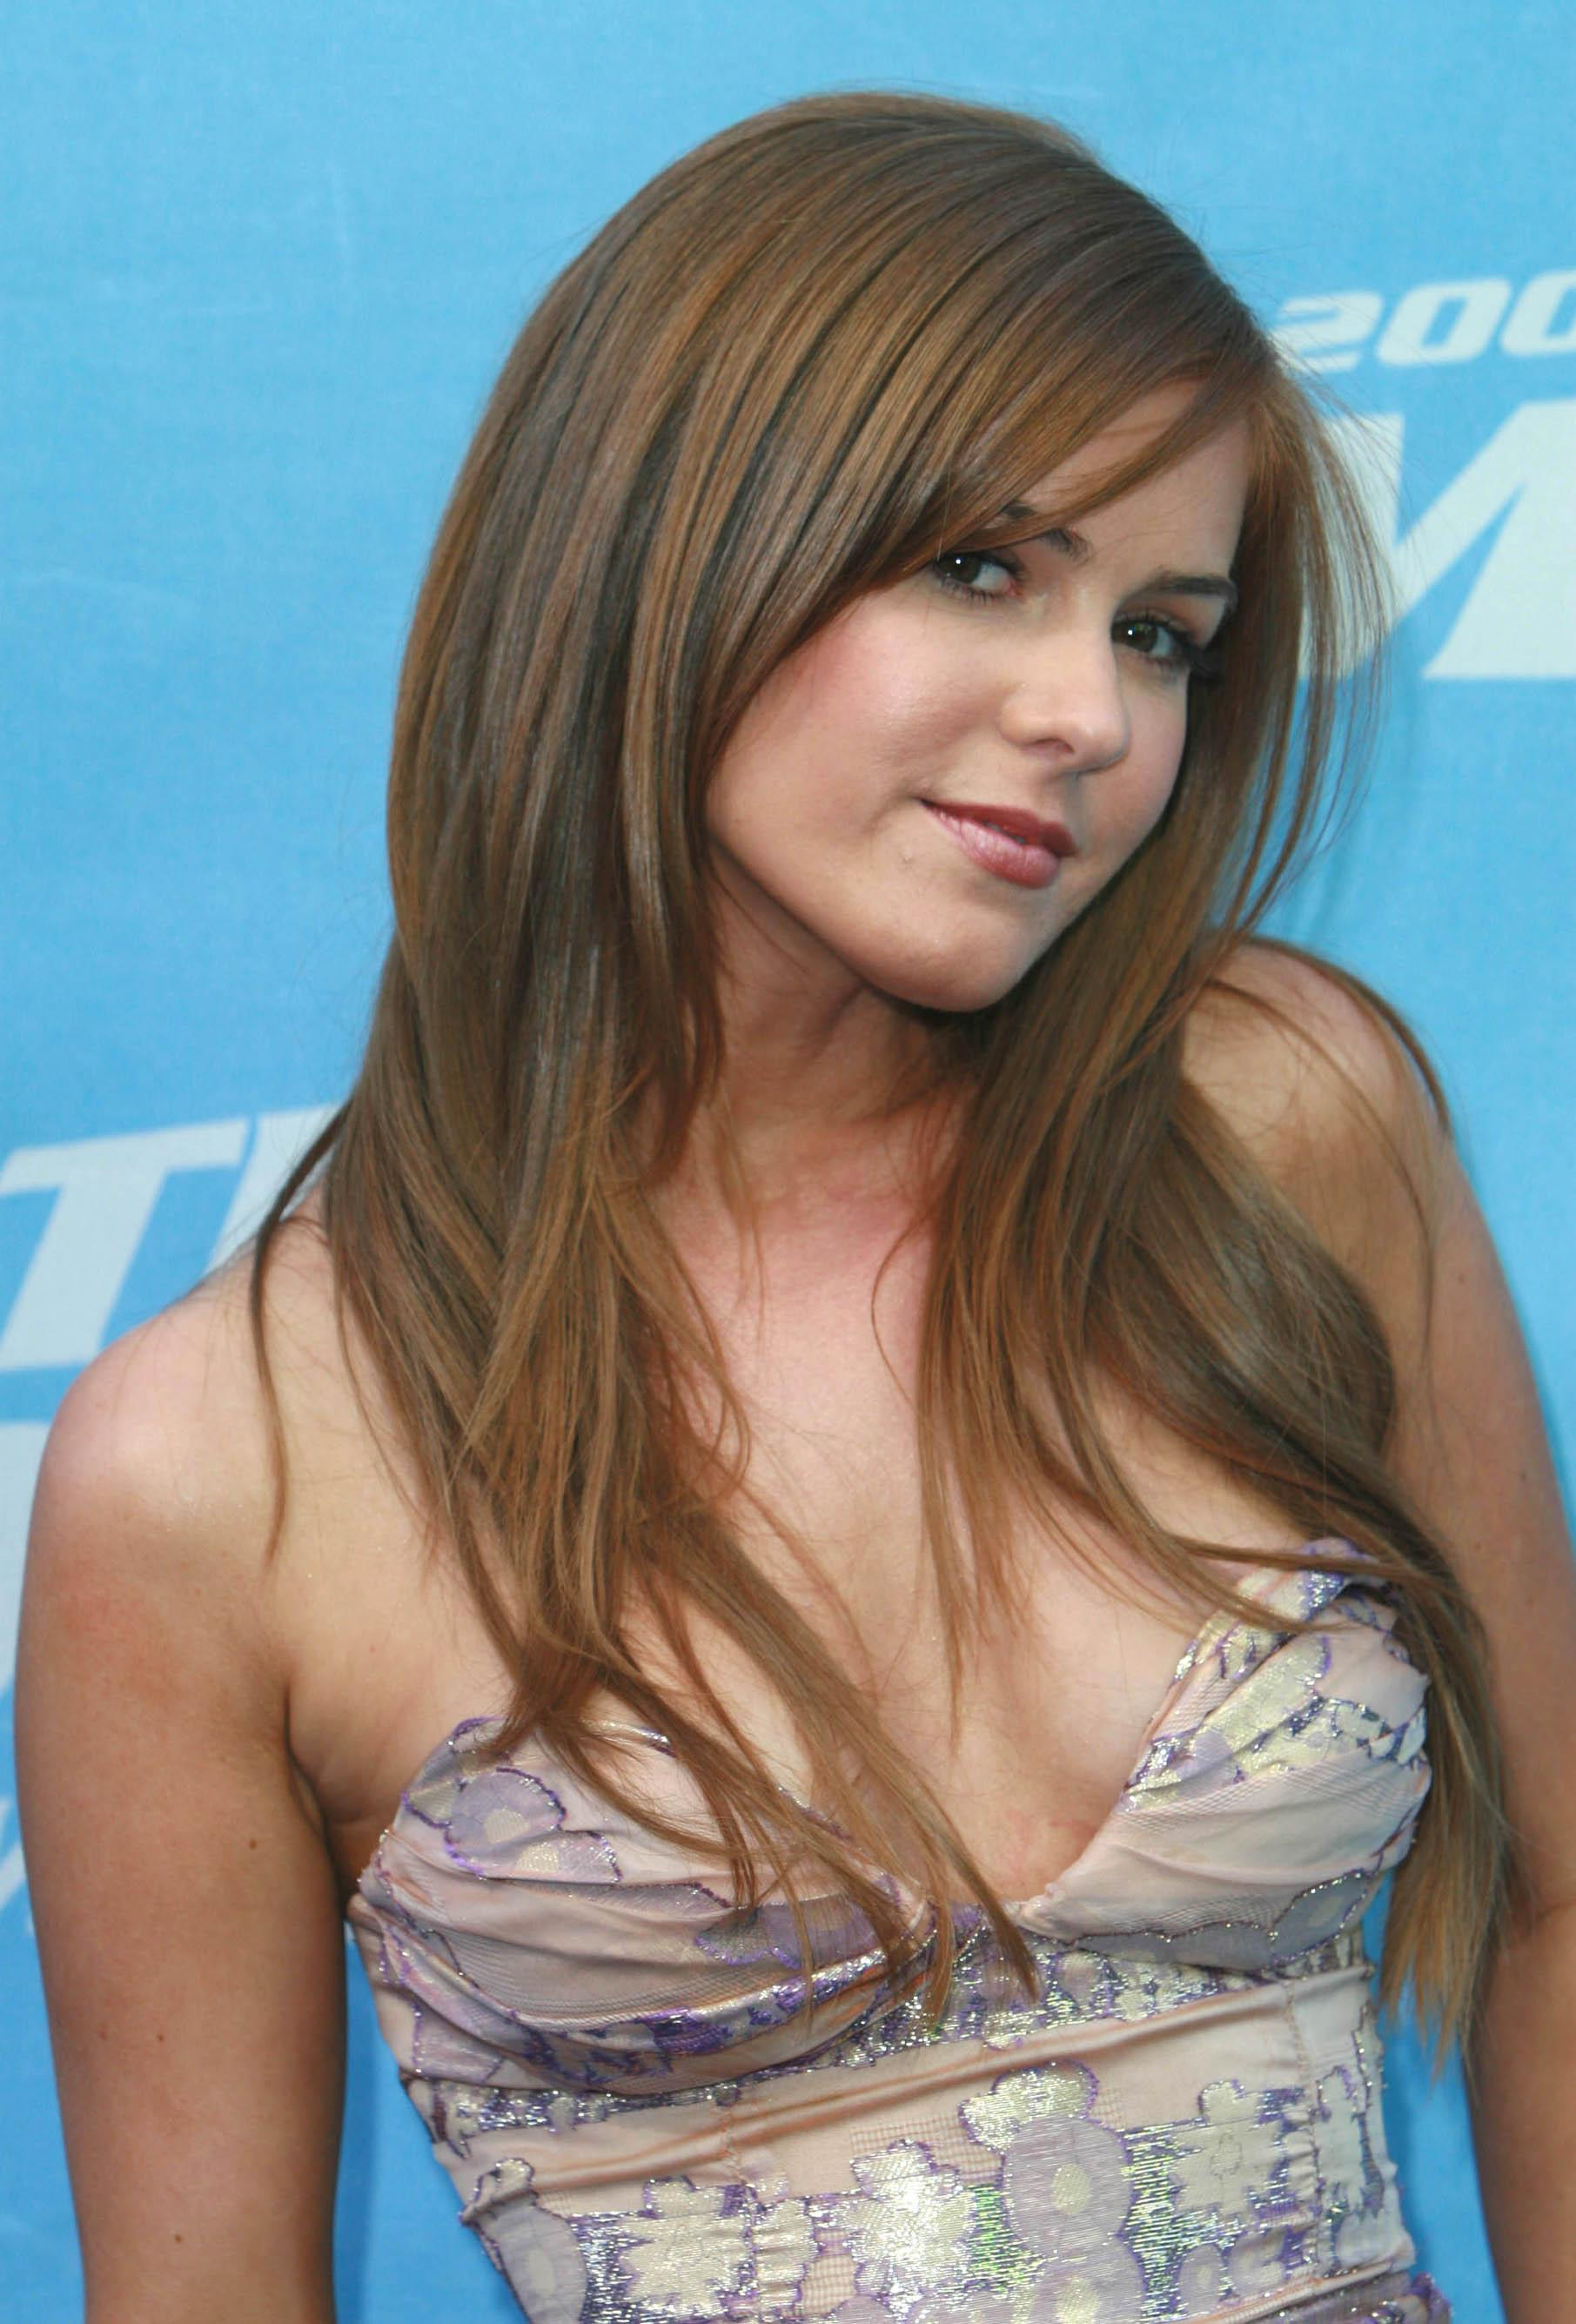 Isla Fisher Nude Photos isla fisher nude, naked - pics and videos - imperiodefamosas